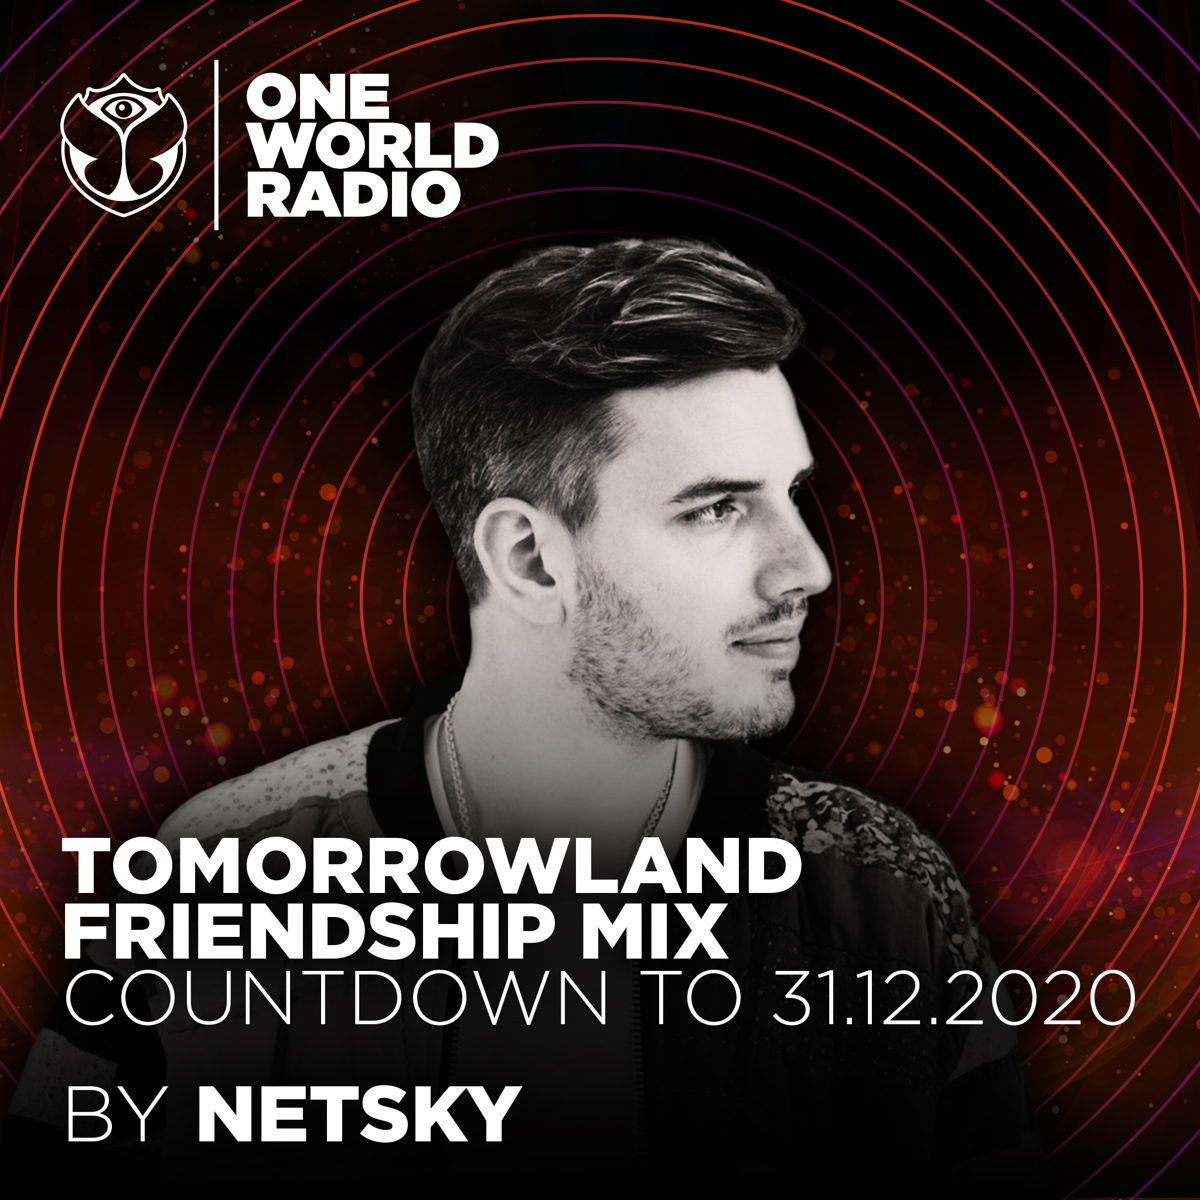 Tomorrowland Friendship Mix by Netsky